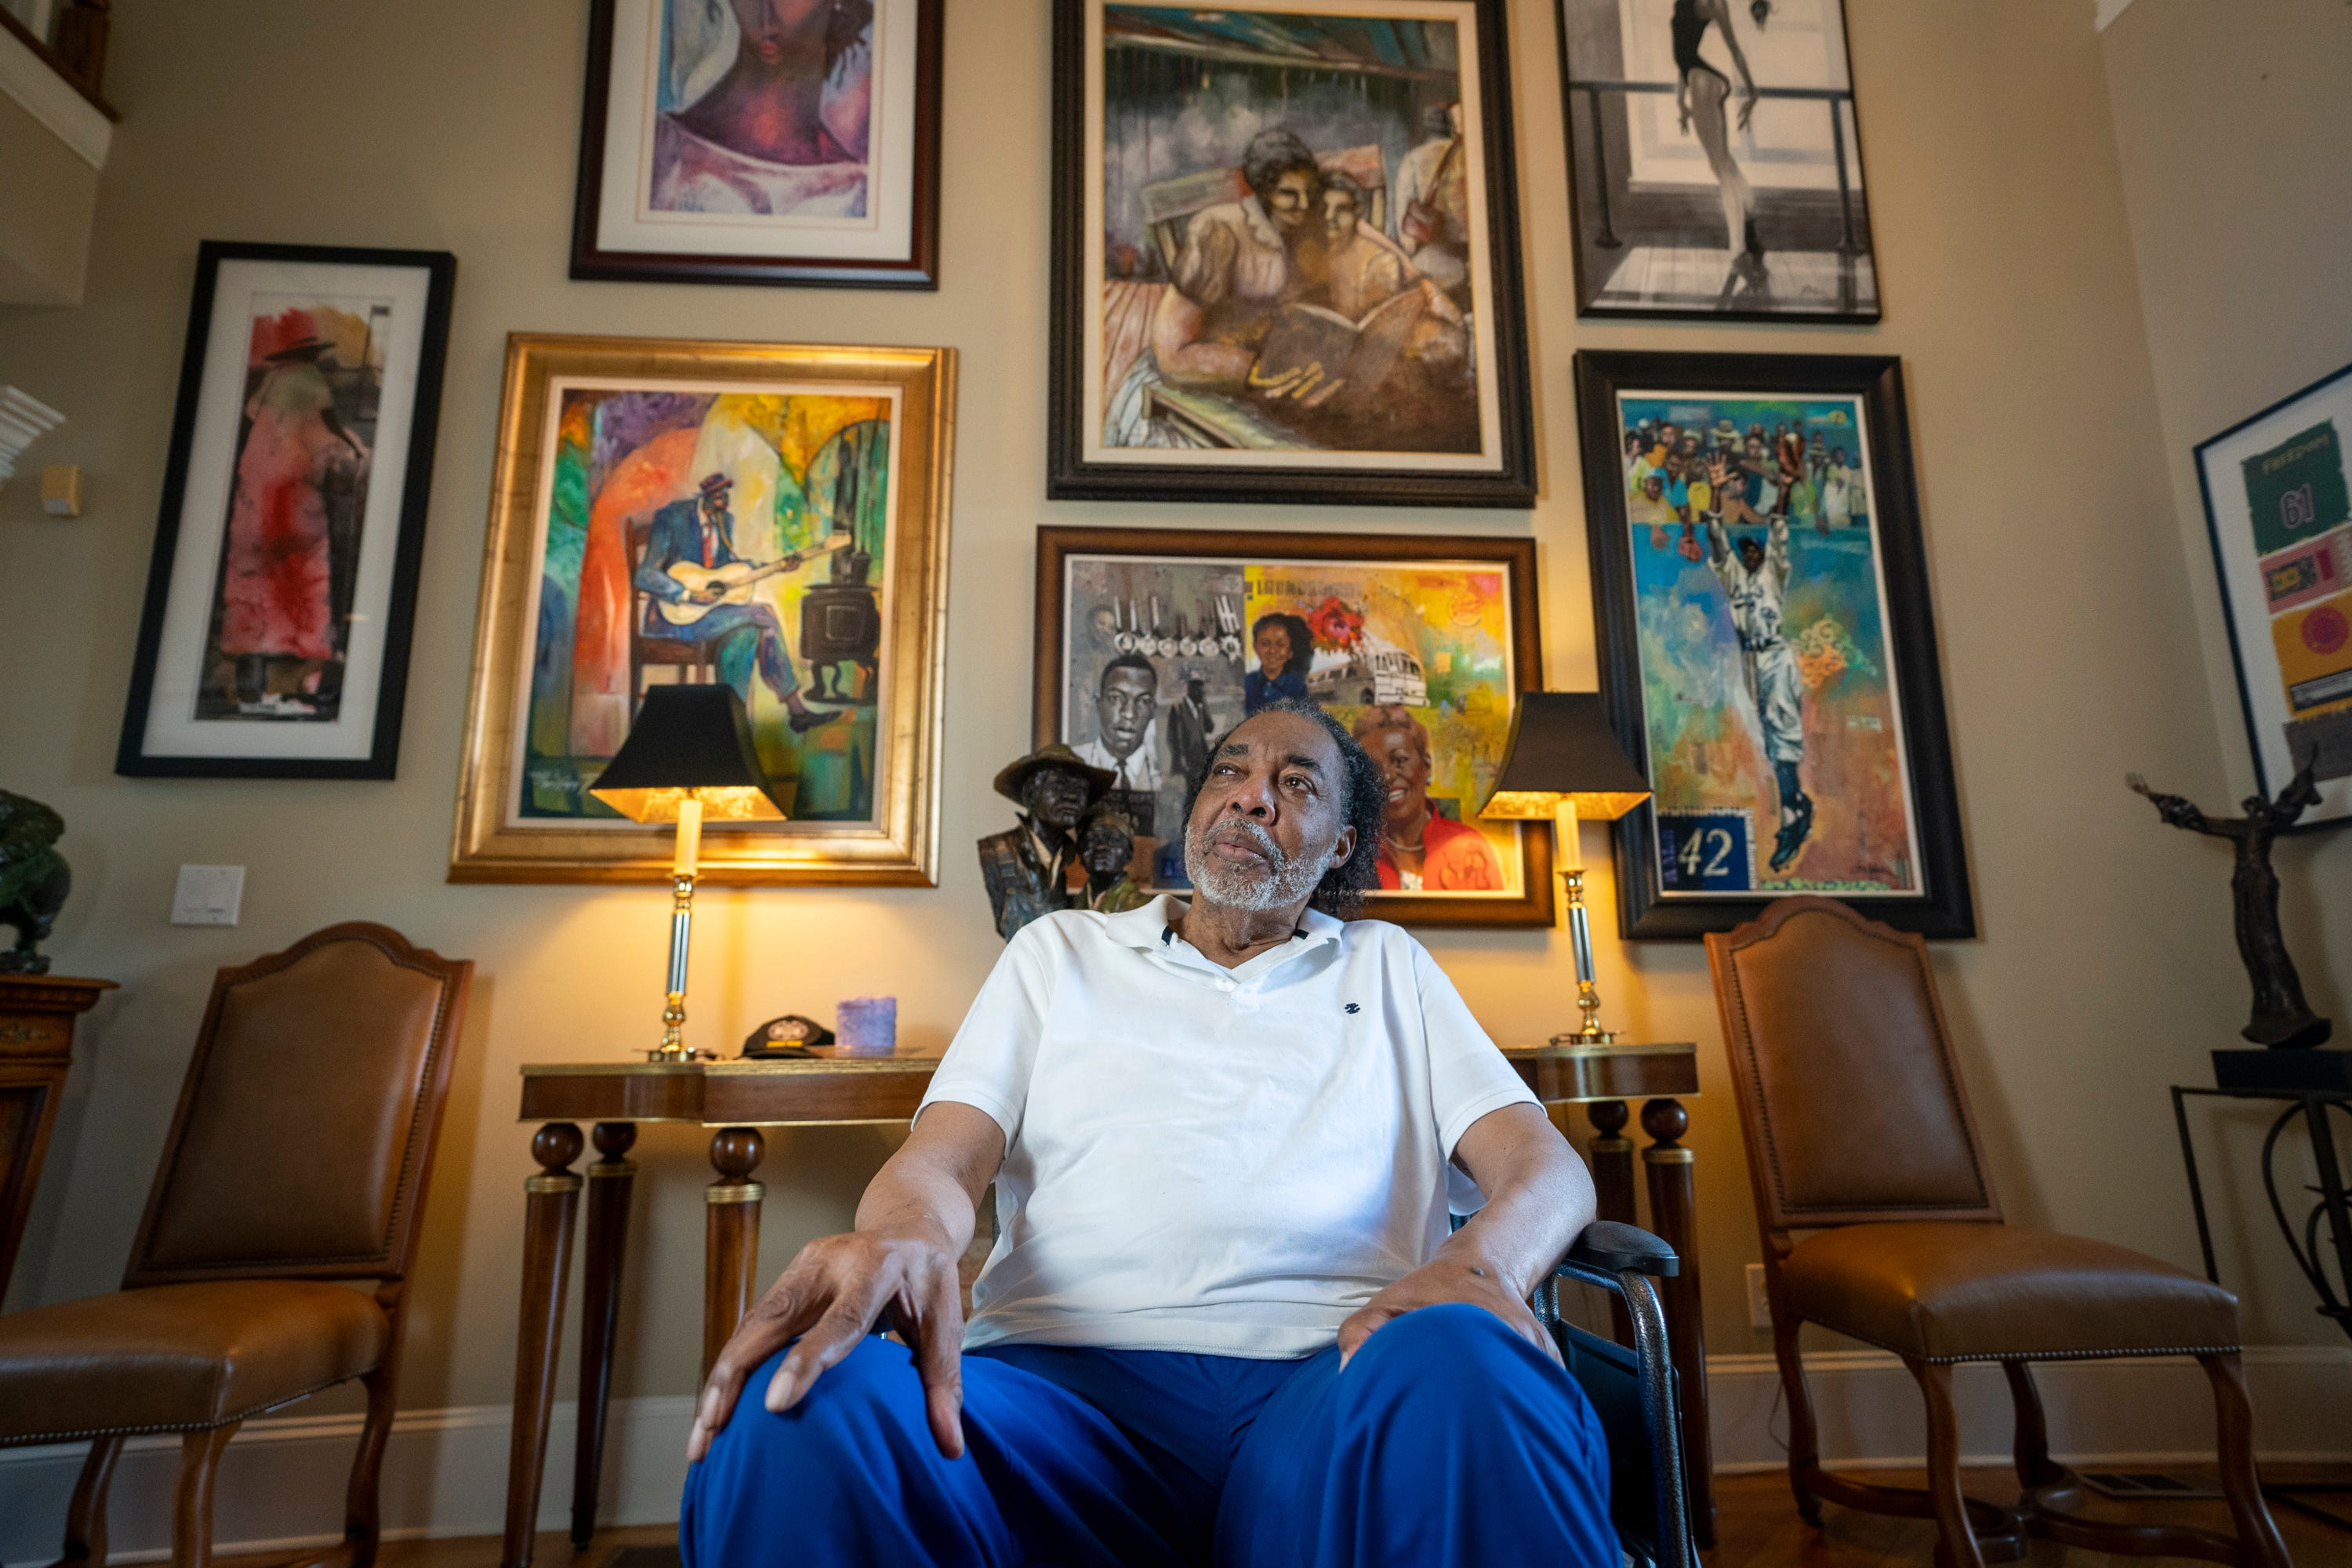 Hank Thomas, a Freedom Rider who survived the firebombing of a bus he was on in 1961, sits for a portrait in his home in Stone Mountain, Ga., on Aug. 15, 2021. Eleven days into the Freedom Rides aimed at ending segregation, Hank Thomas and other Freedom Riders huddled on a bus on May 14, 1961, just outside Anniston, Ala., as a white mob slashed tires on their bus, pounded it with tire irons and then threw a firebomb inside.